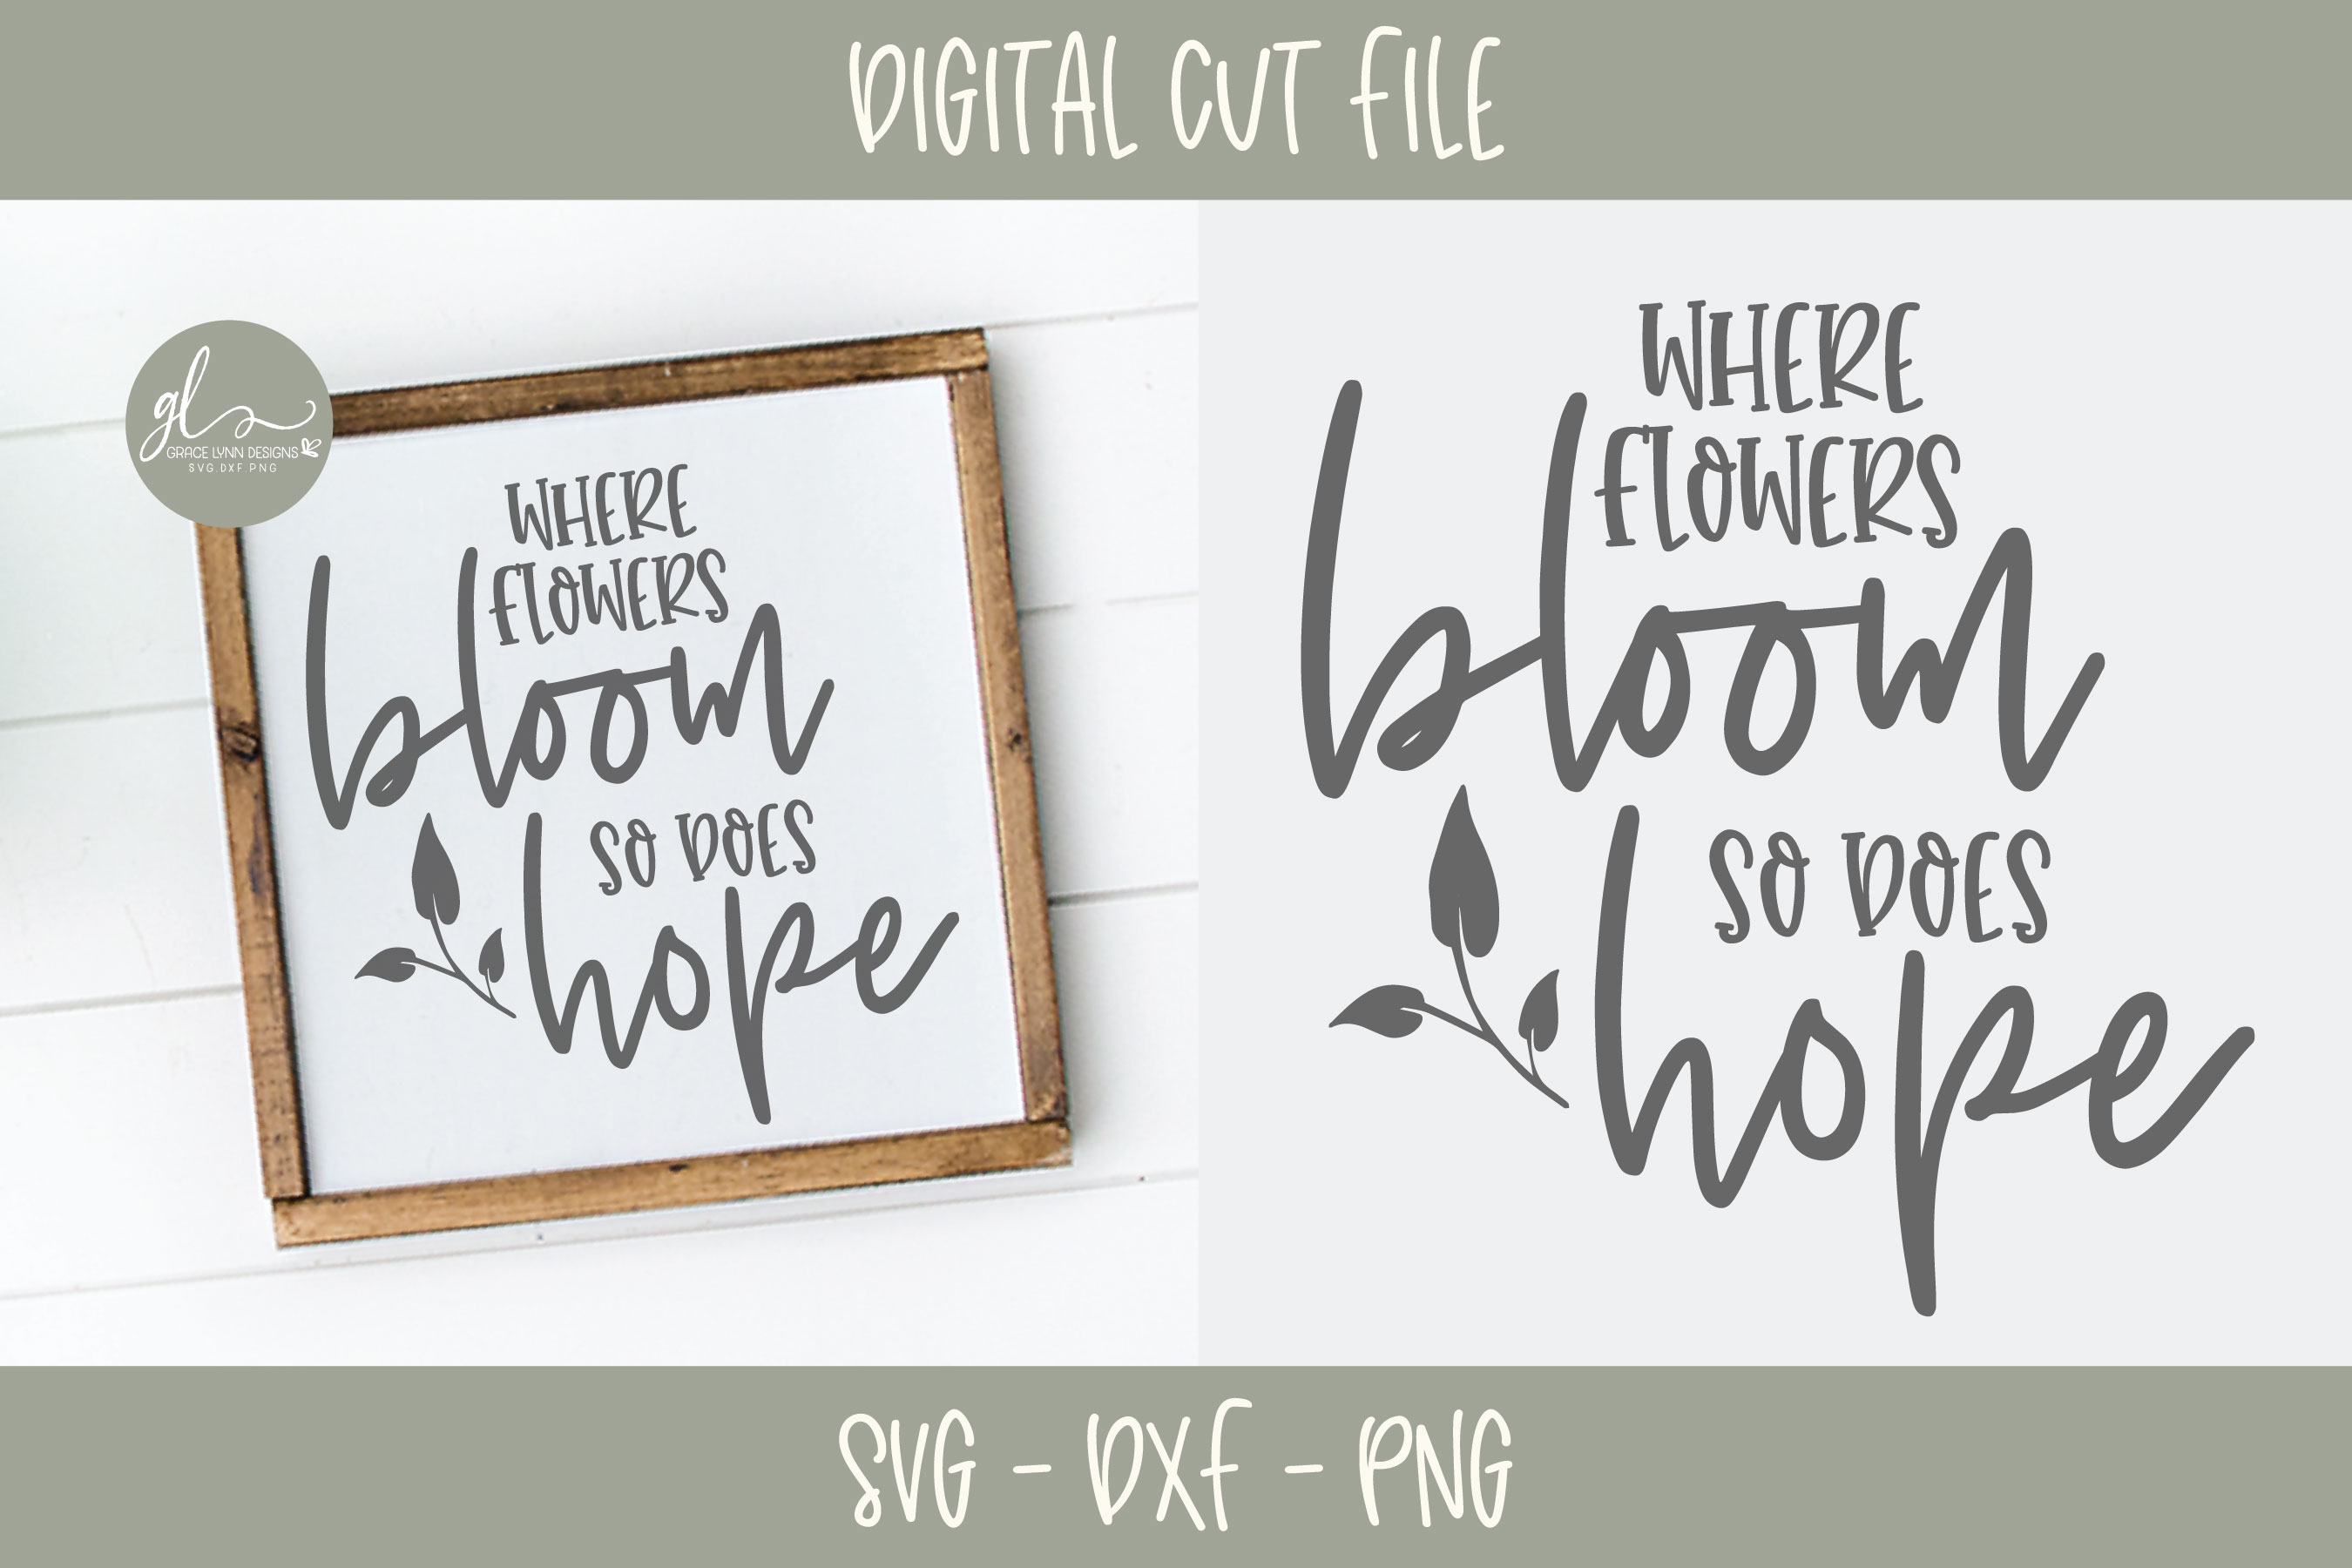 Where Flowers Bloom So Does Hope - SVG Cut File example image 1